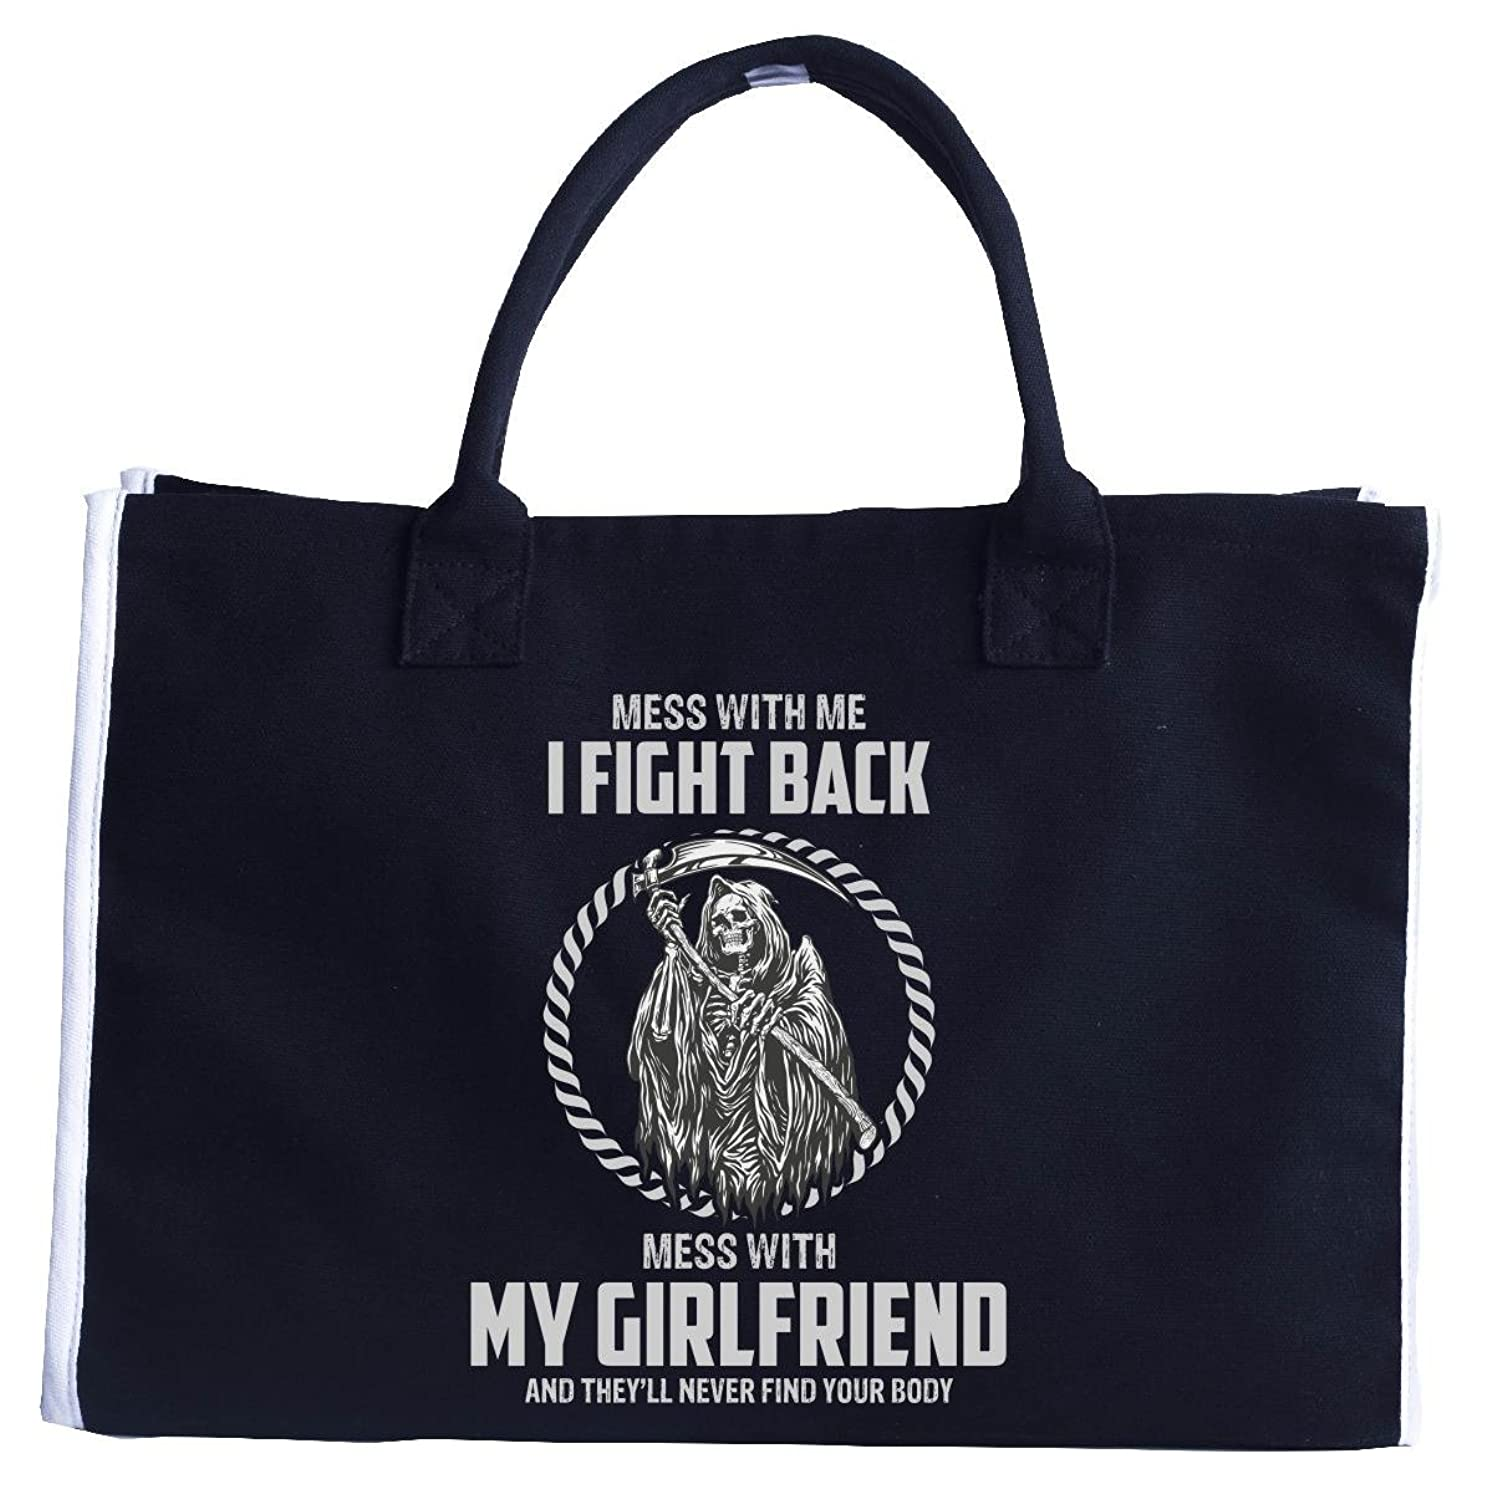 Mess With My Girlfriend Funny Gift For Any Boyfriend - Tote Bag